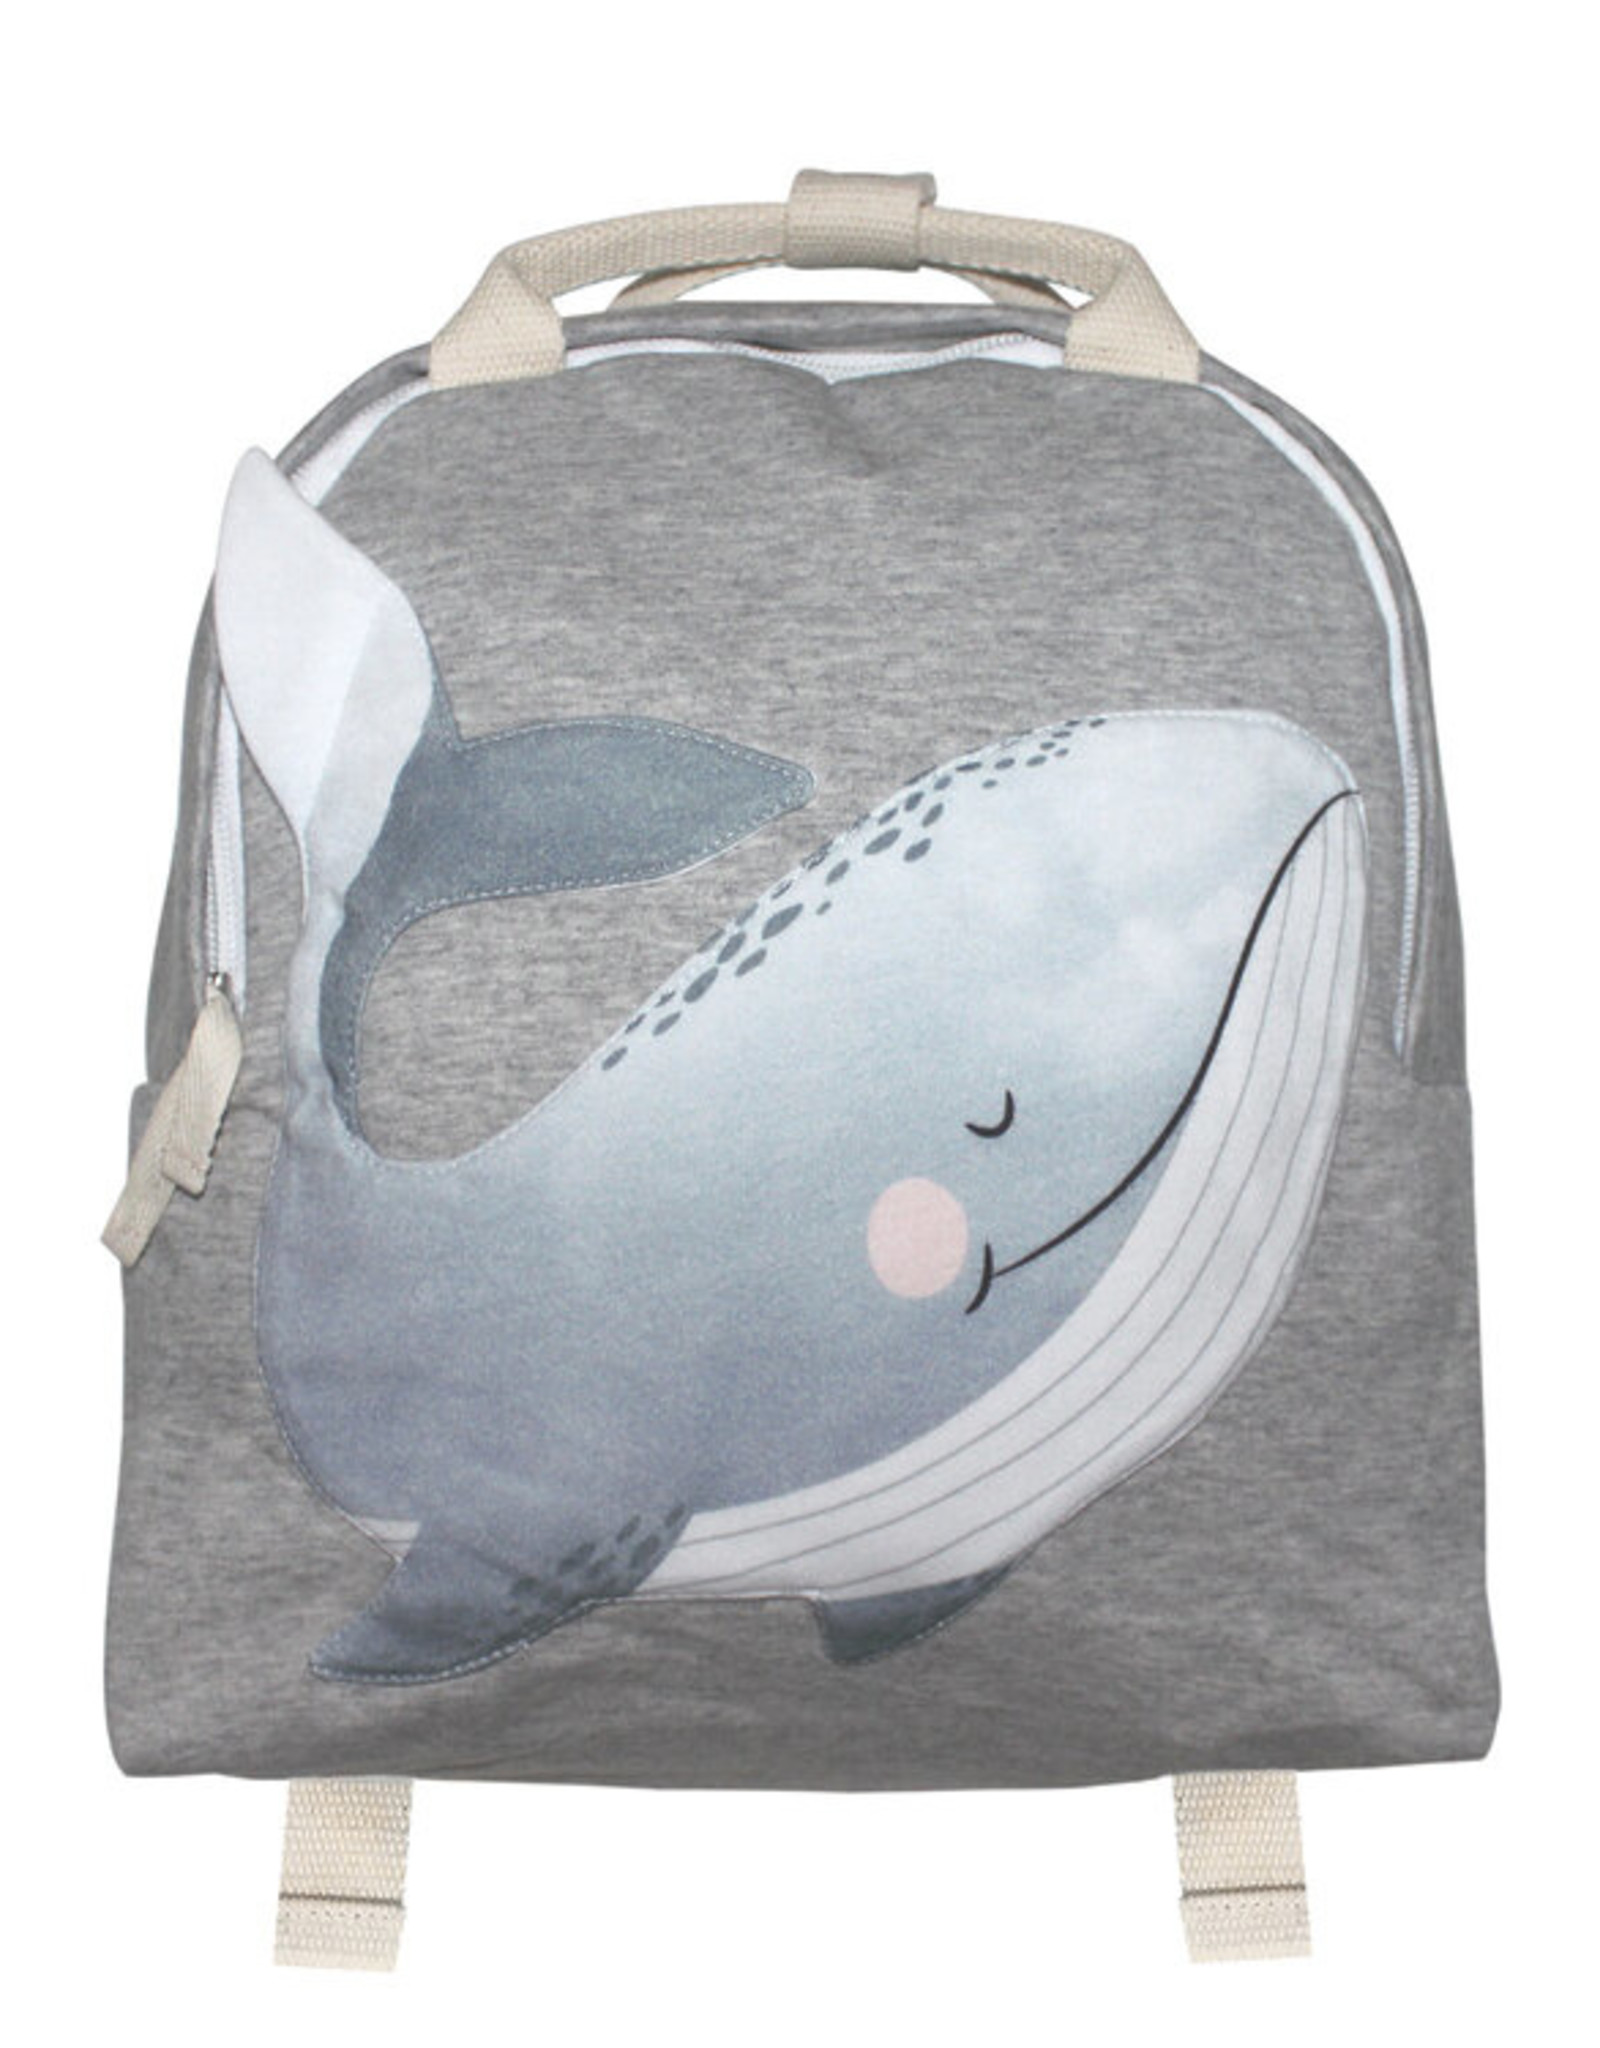 Mister Fly Mister Fly Backpack - Whale